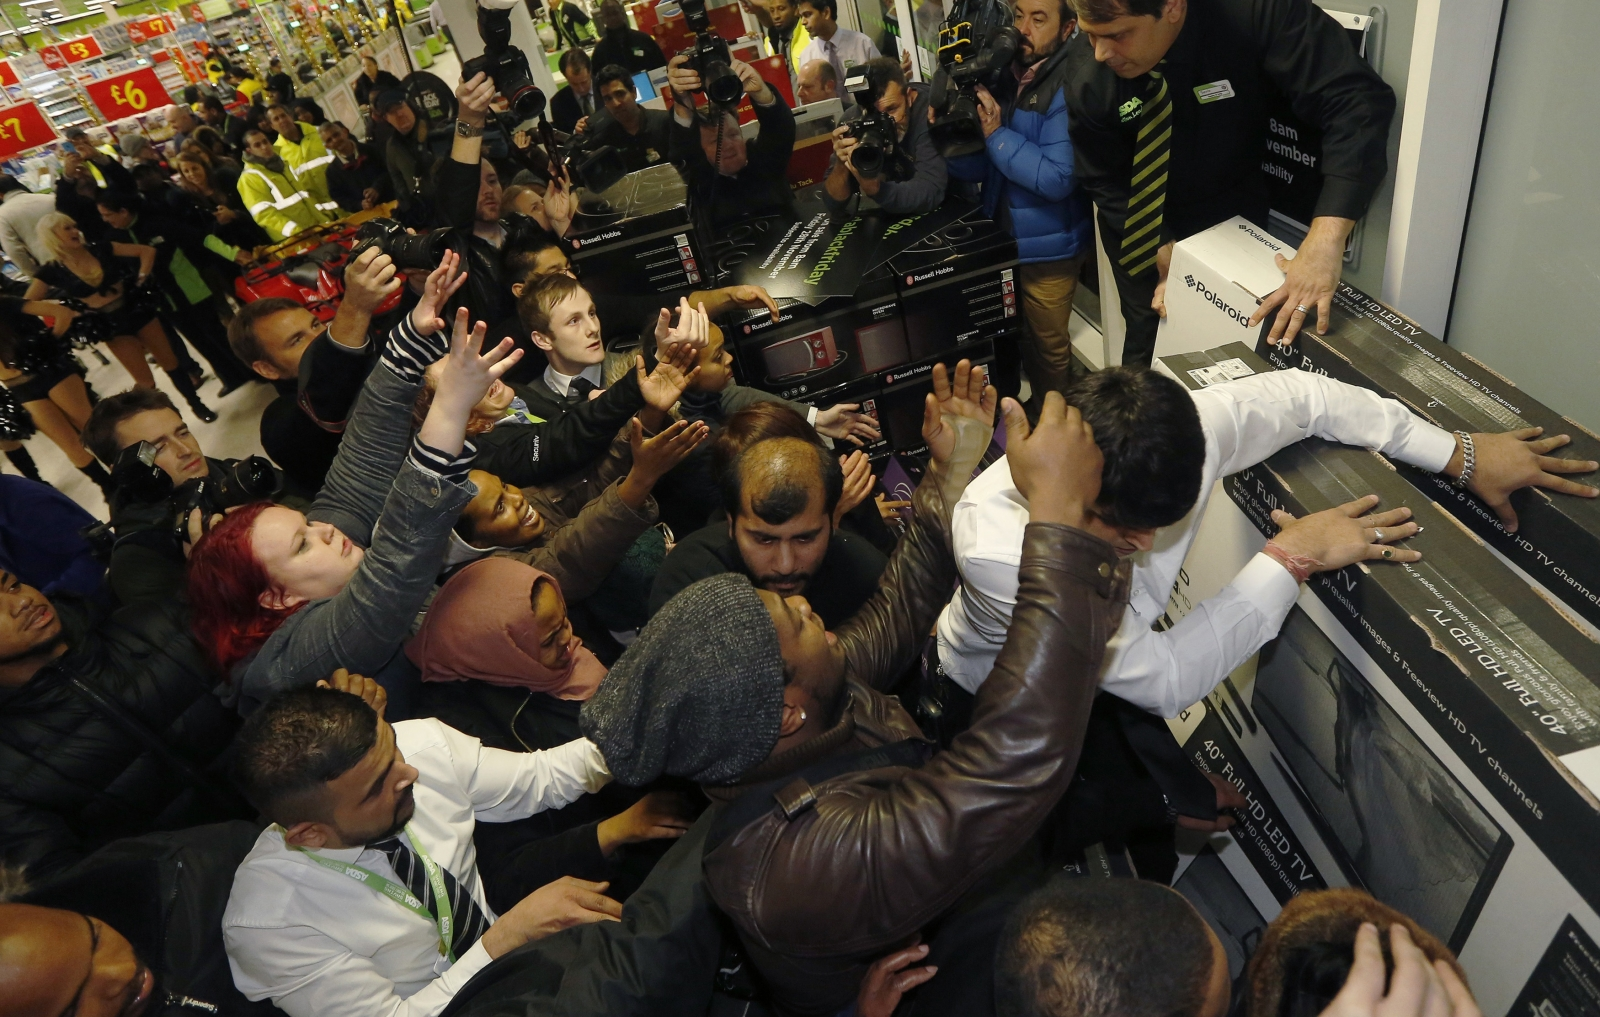 Hordes of shoppers are expected on Panic Saturday